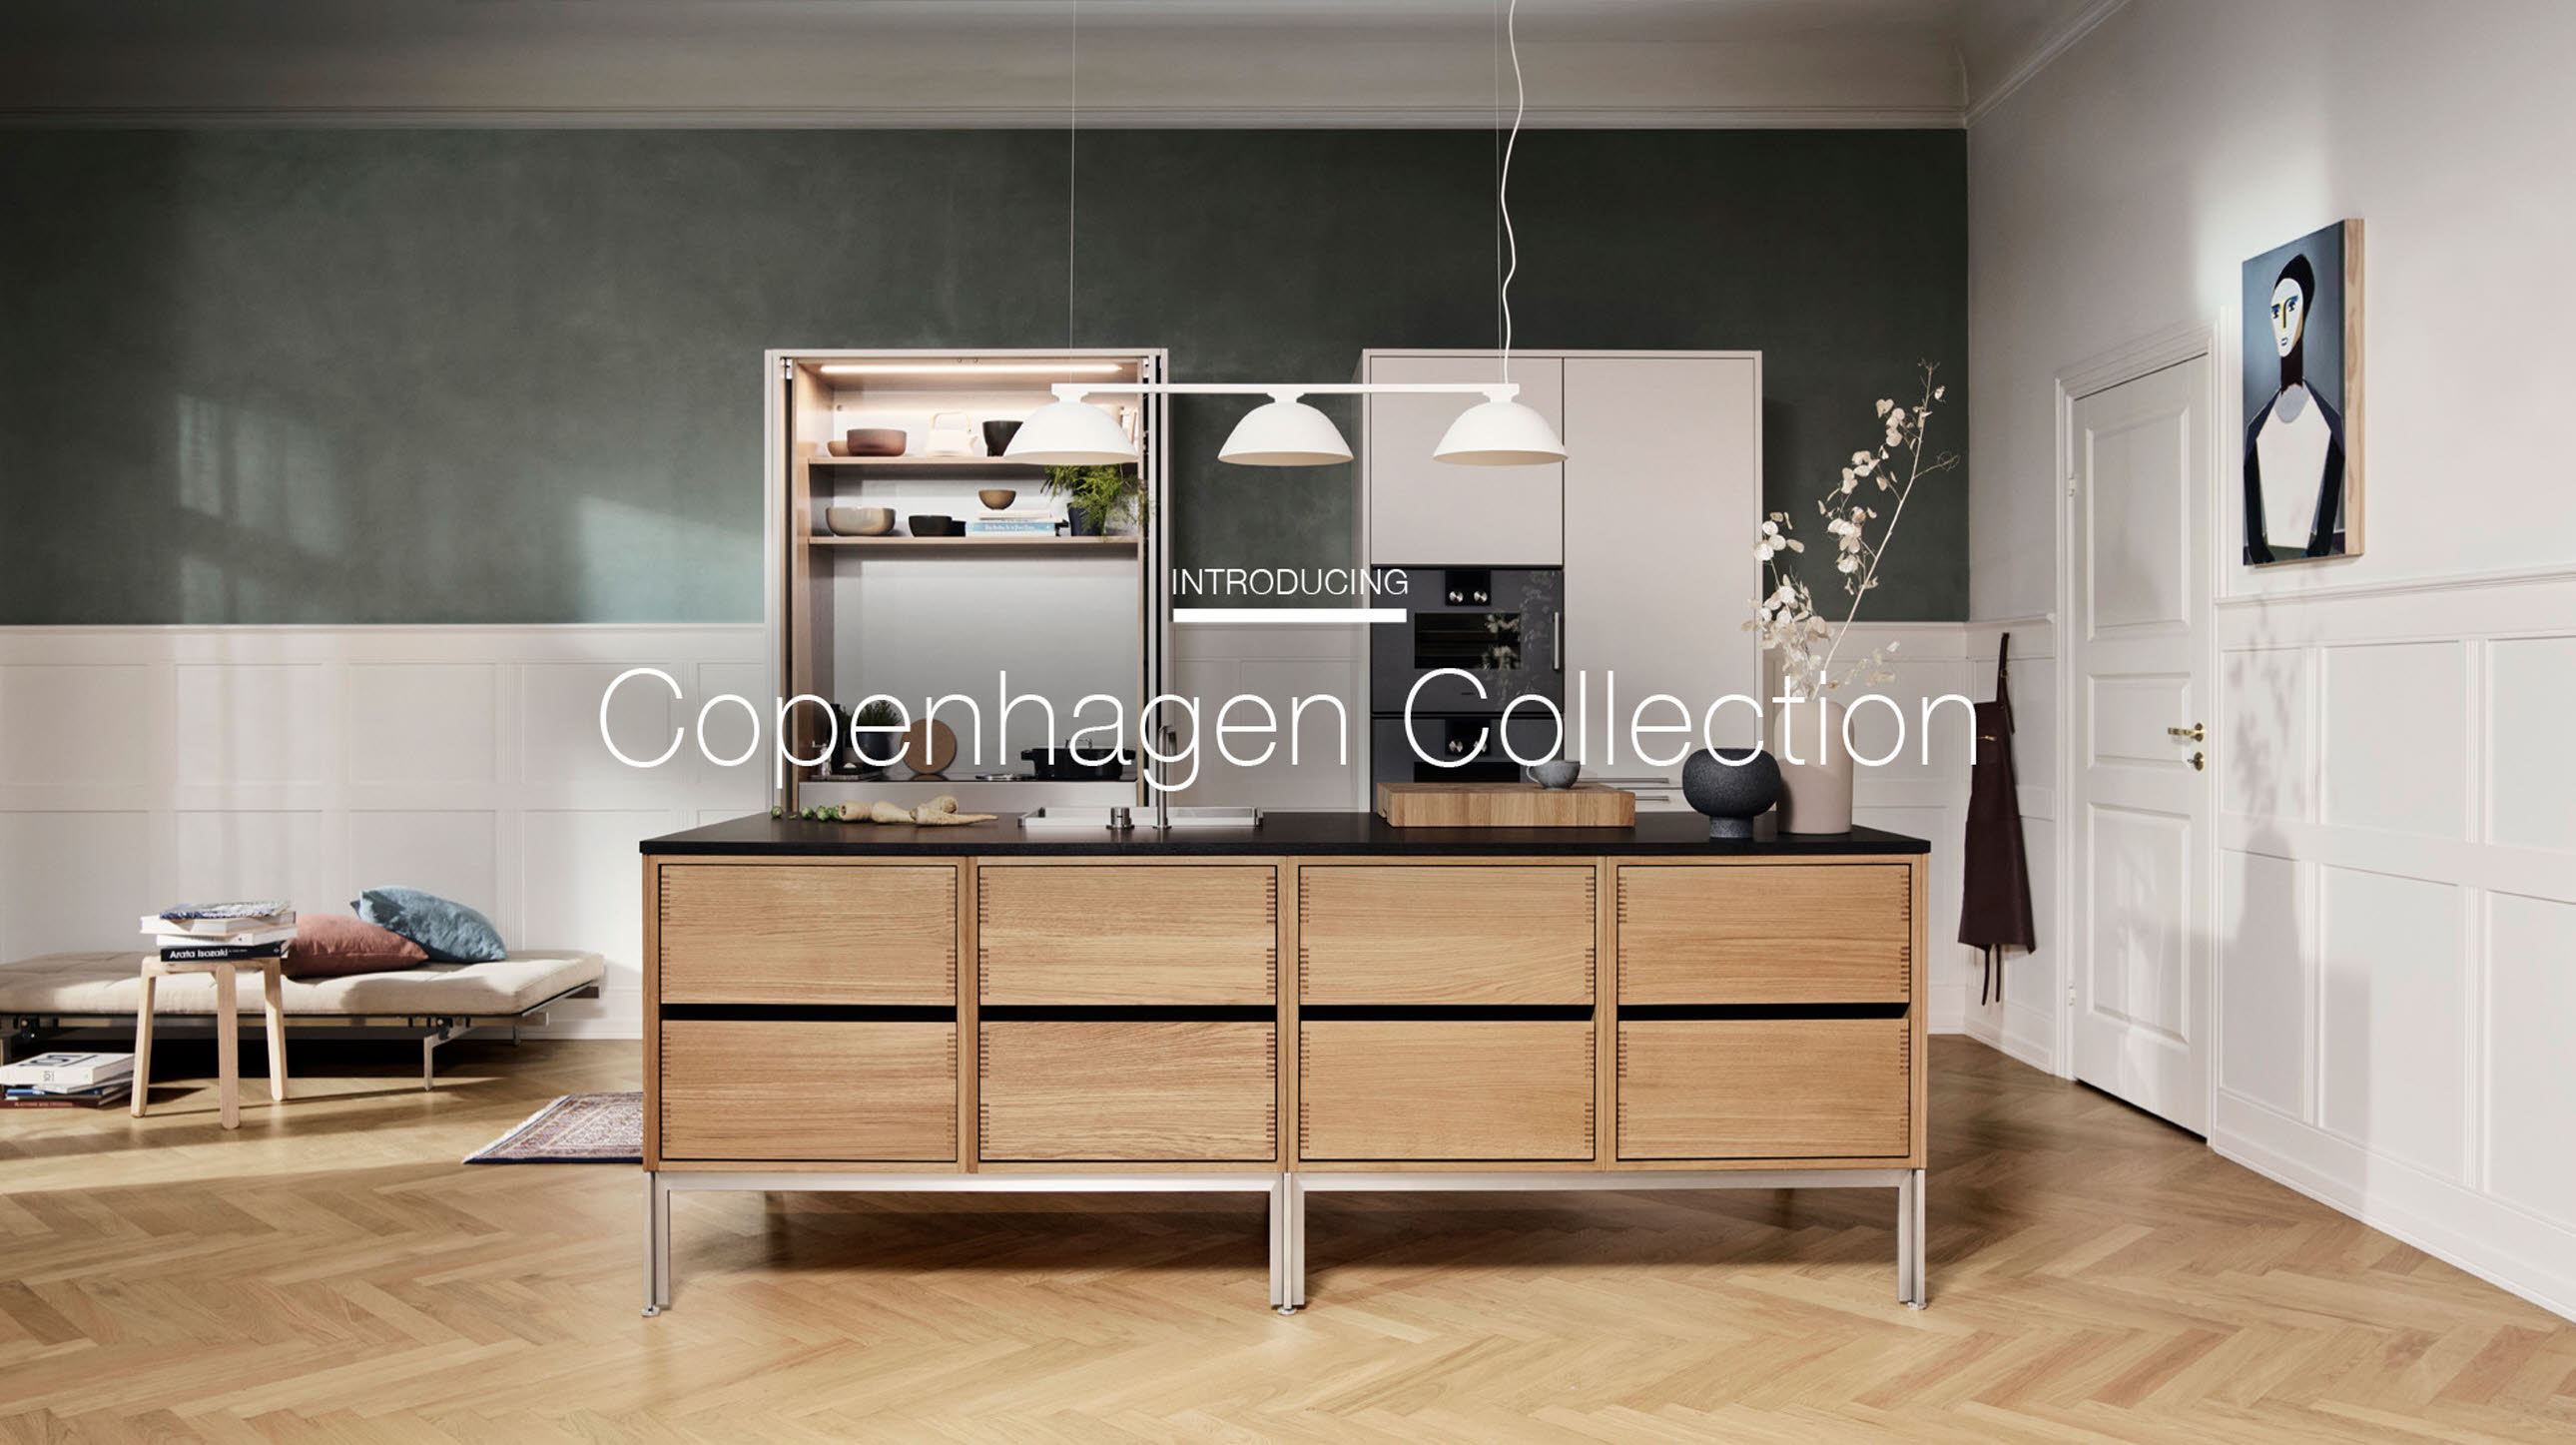 Copenhagen Collection